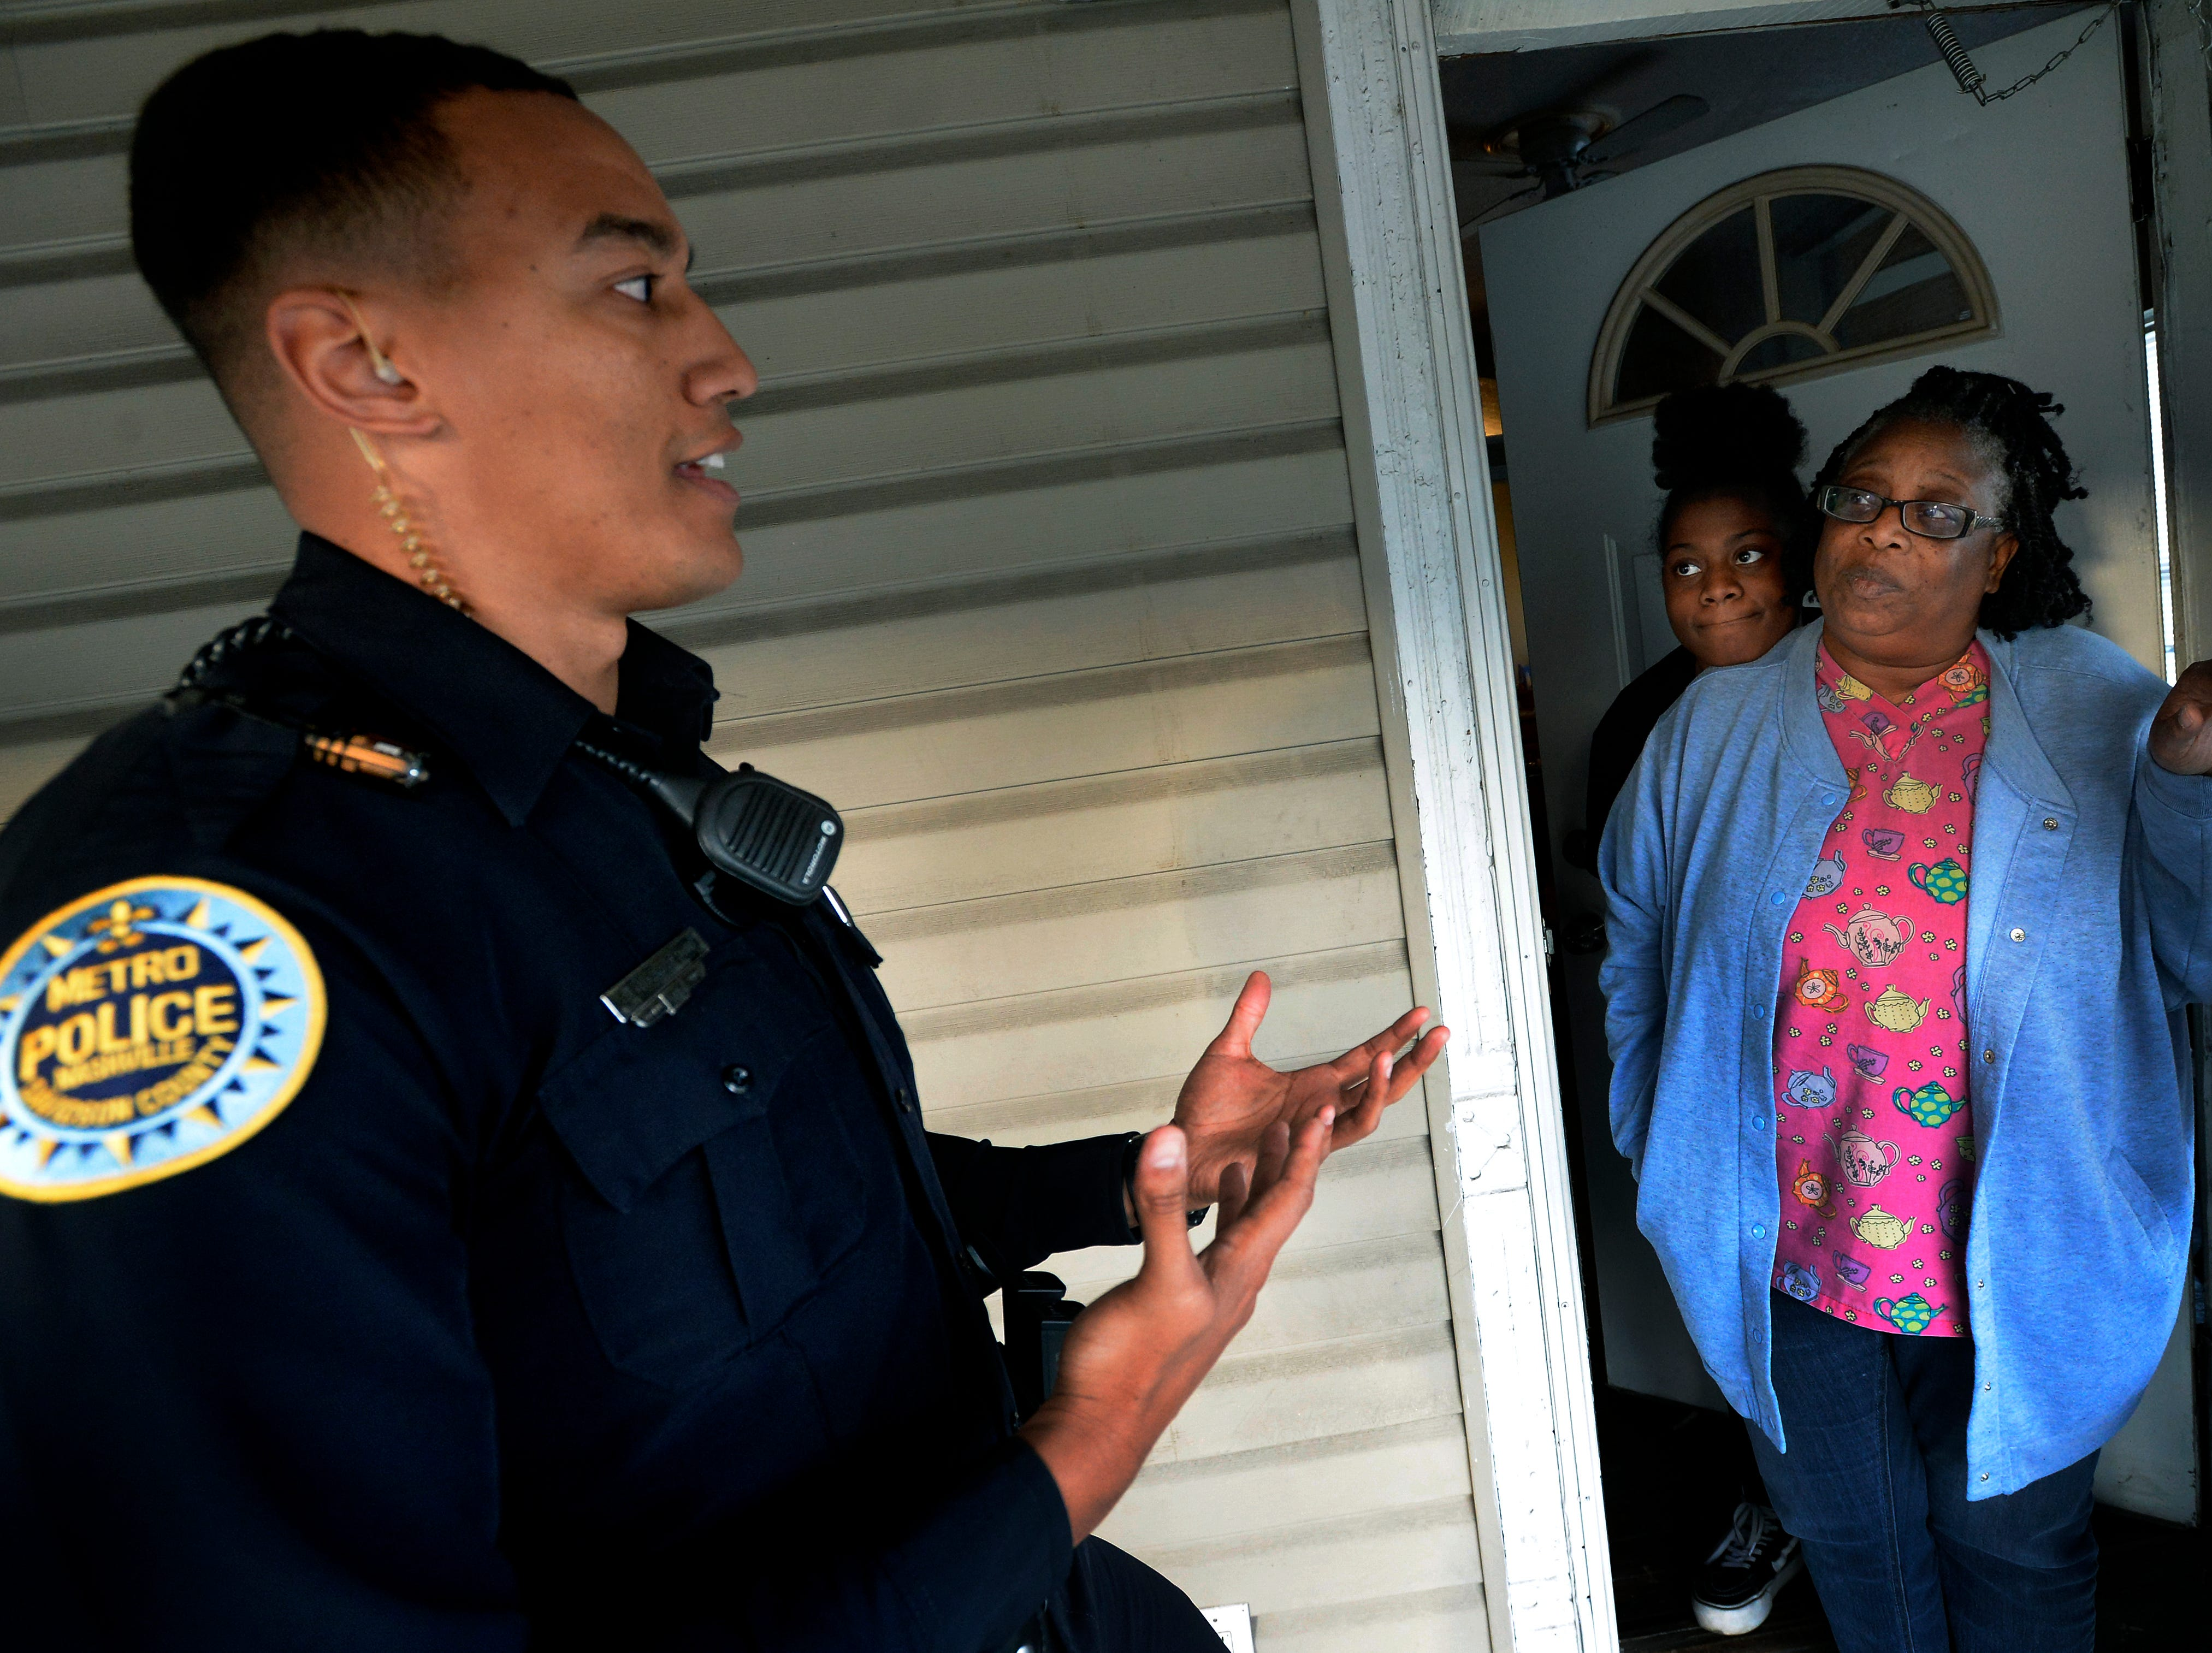 """Metro Nashville police officer Chris Dickerson spends time talking with Regina Scruggs and Athyiah Word at their home on Monday, April 1, 2019 in Nashville, Tenn. During the """"fixed post"""" time of his shift, Dickerson spends about 30 minutes in different areas of the north precinct visiting with people in the neighborhood."""